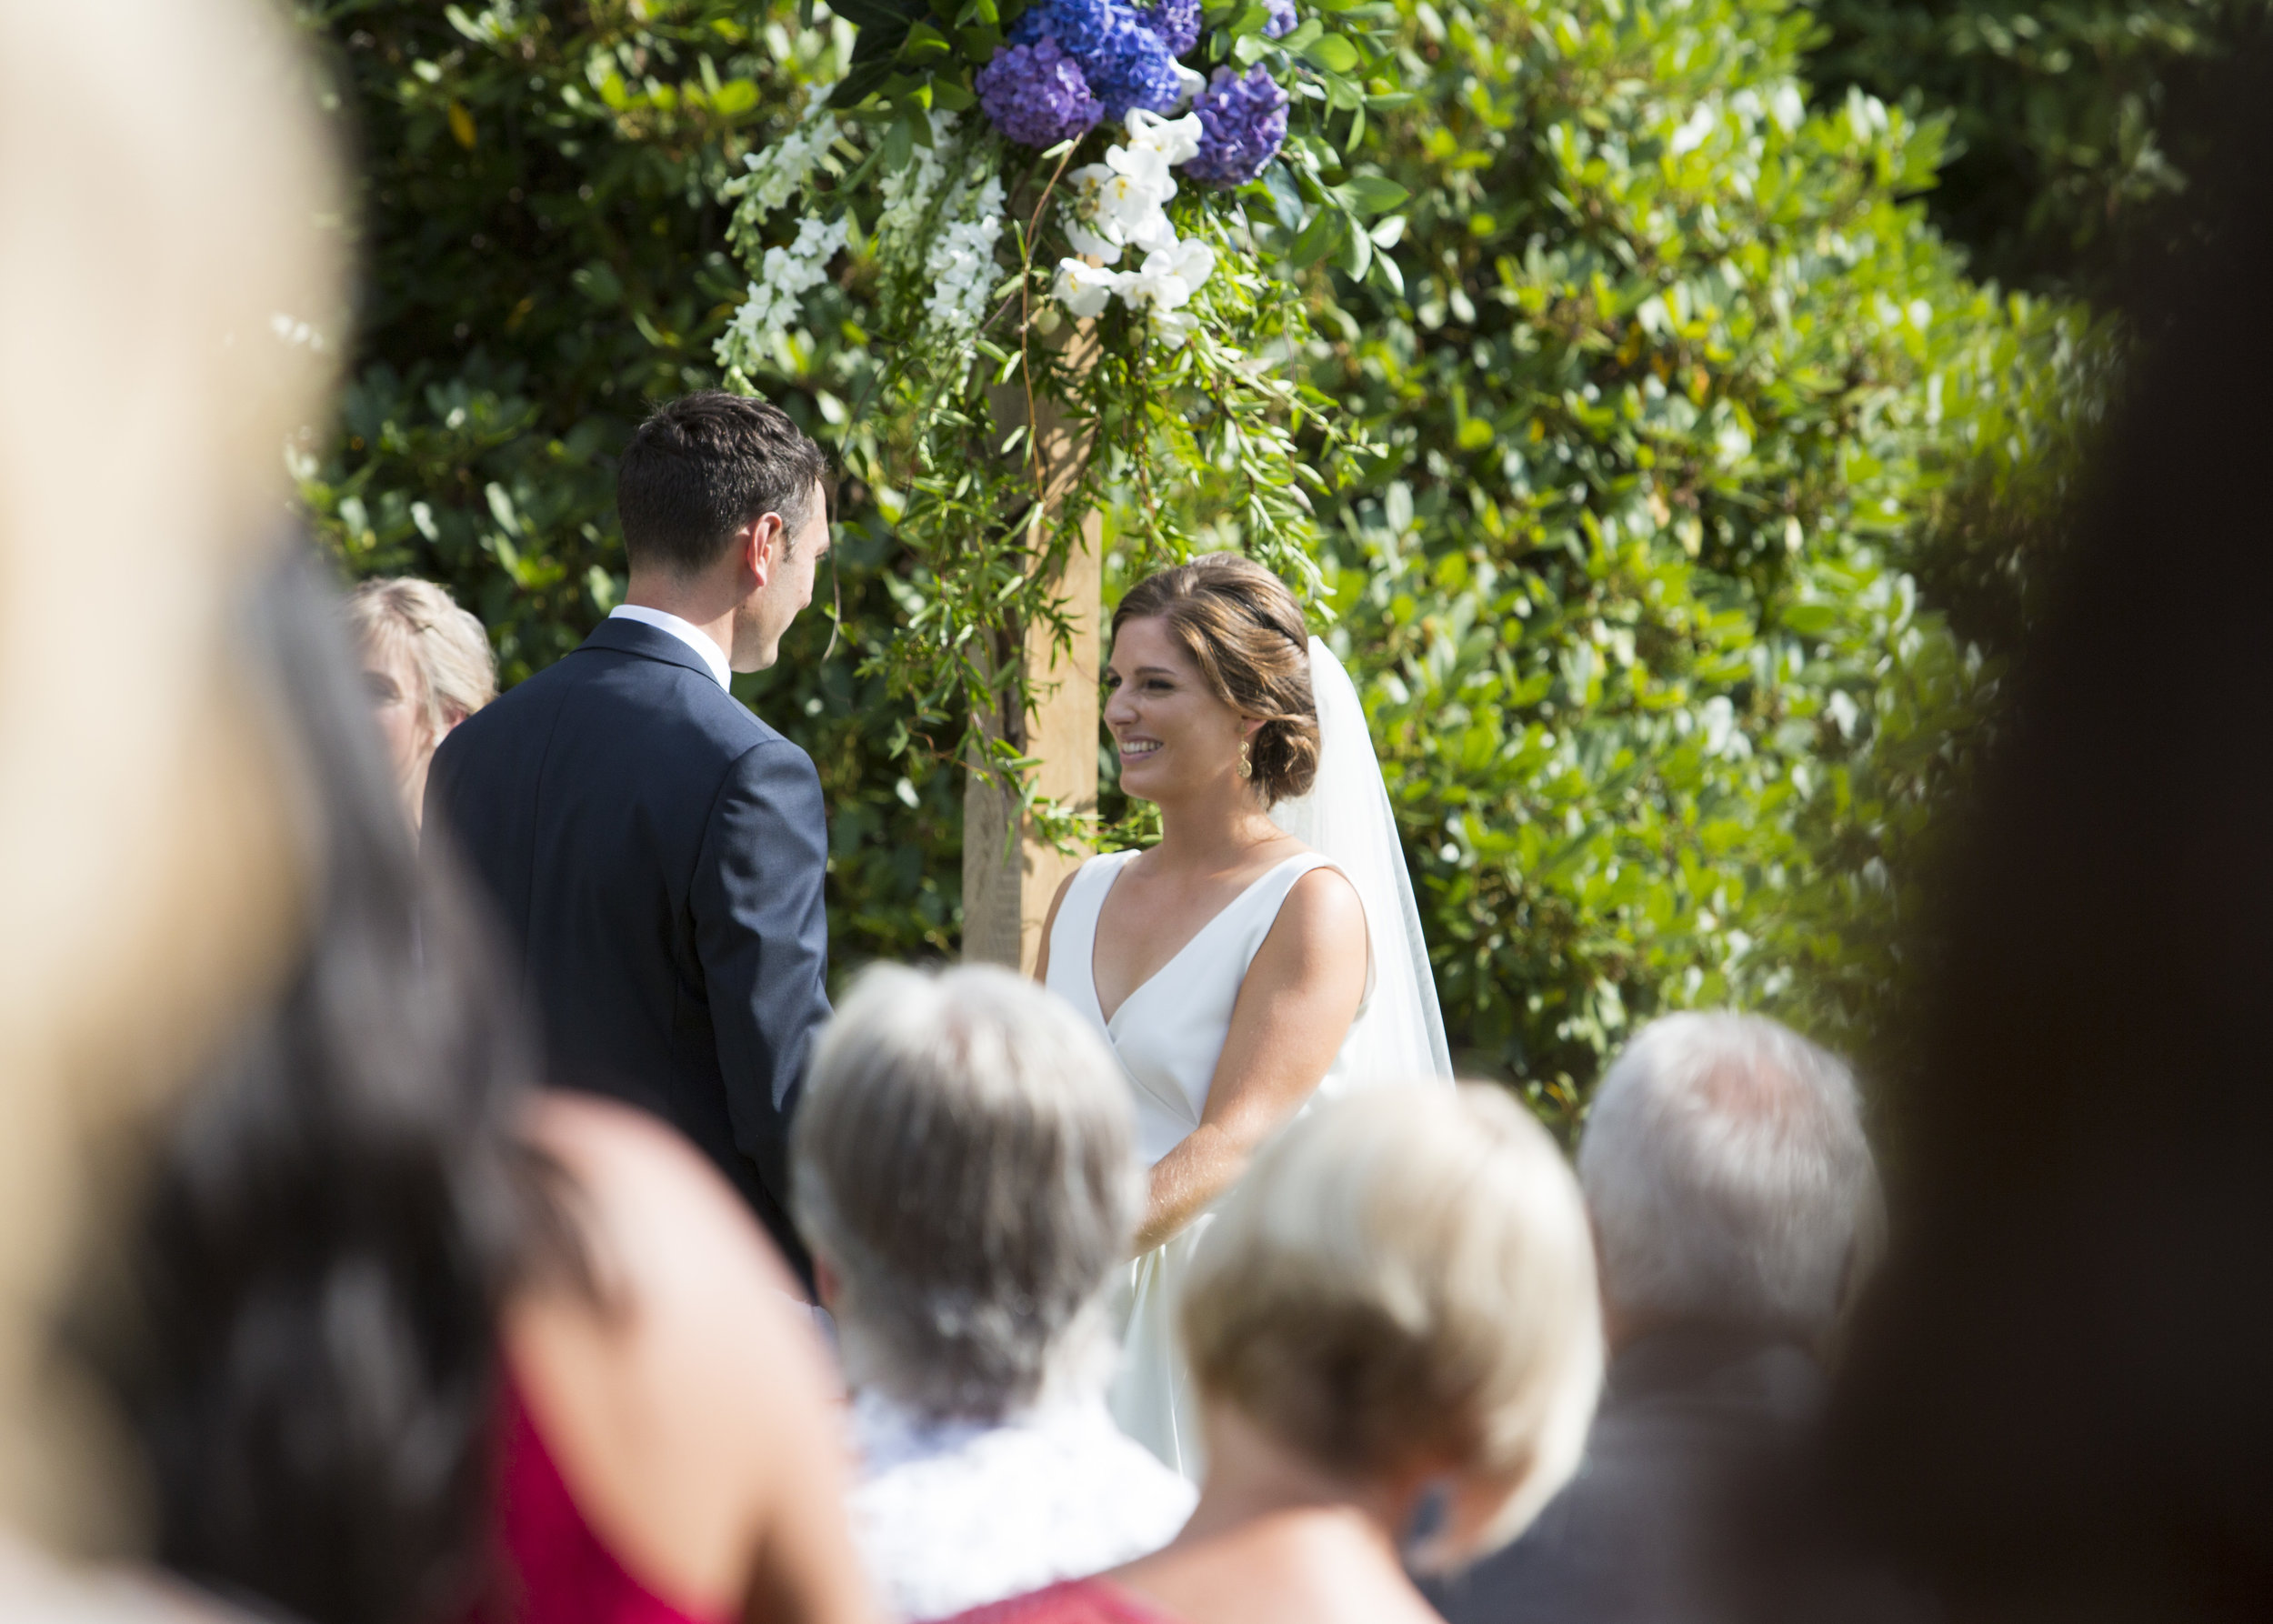 Searle_Wedding_358.jpg